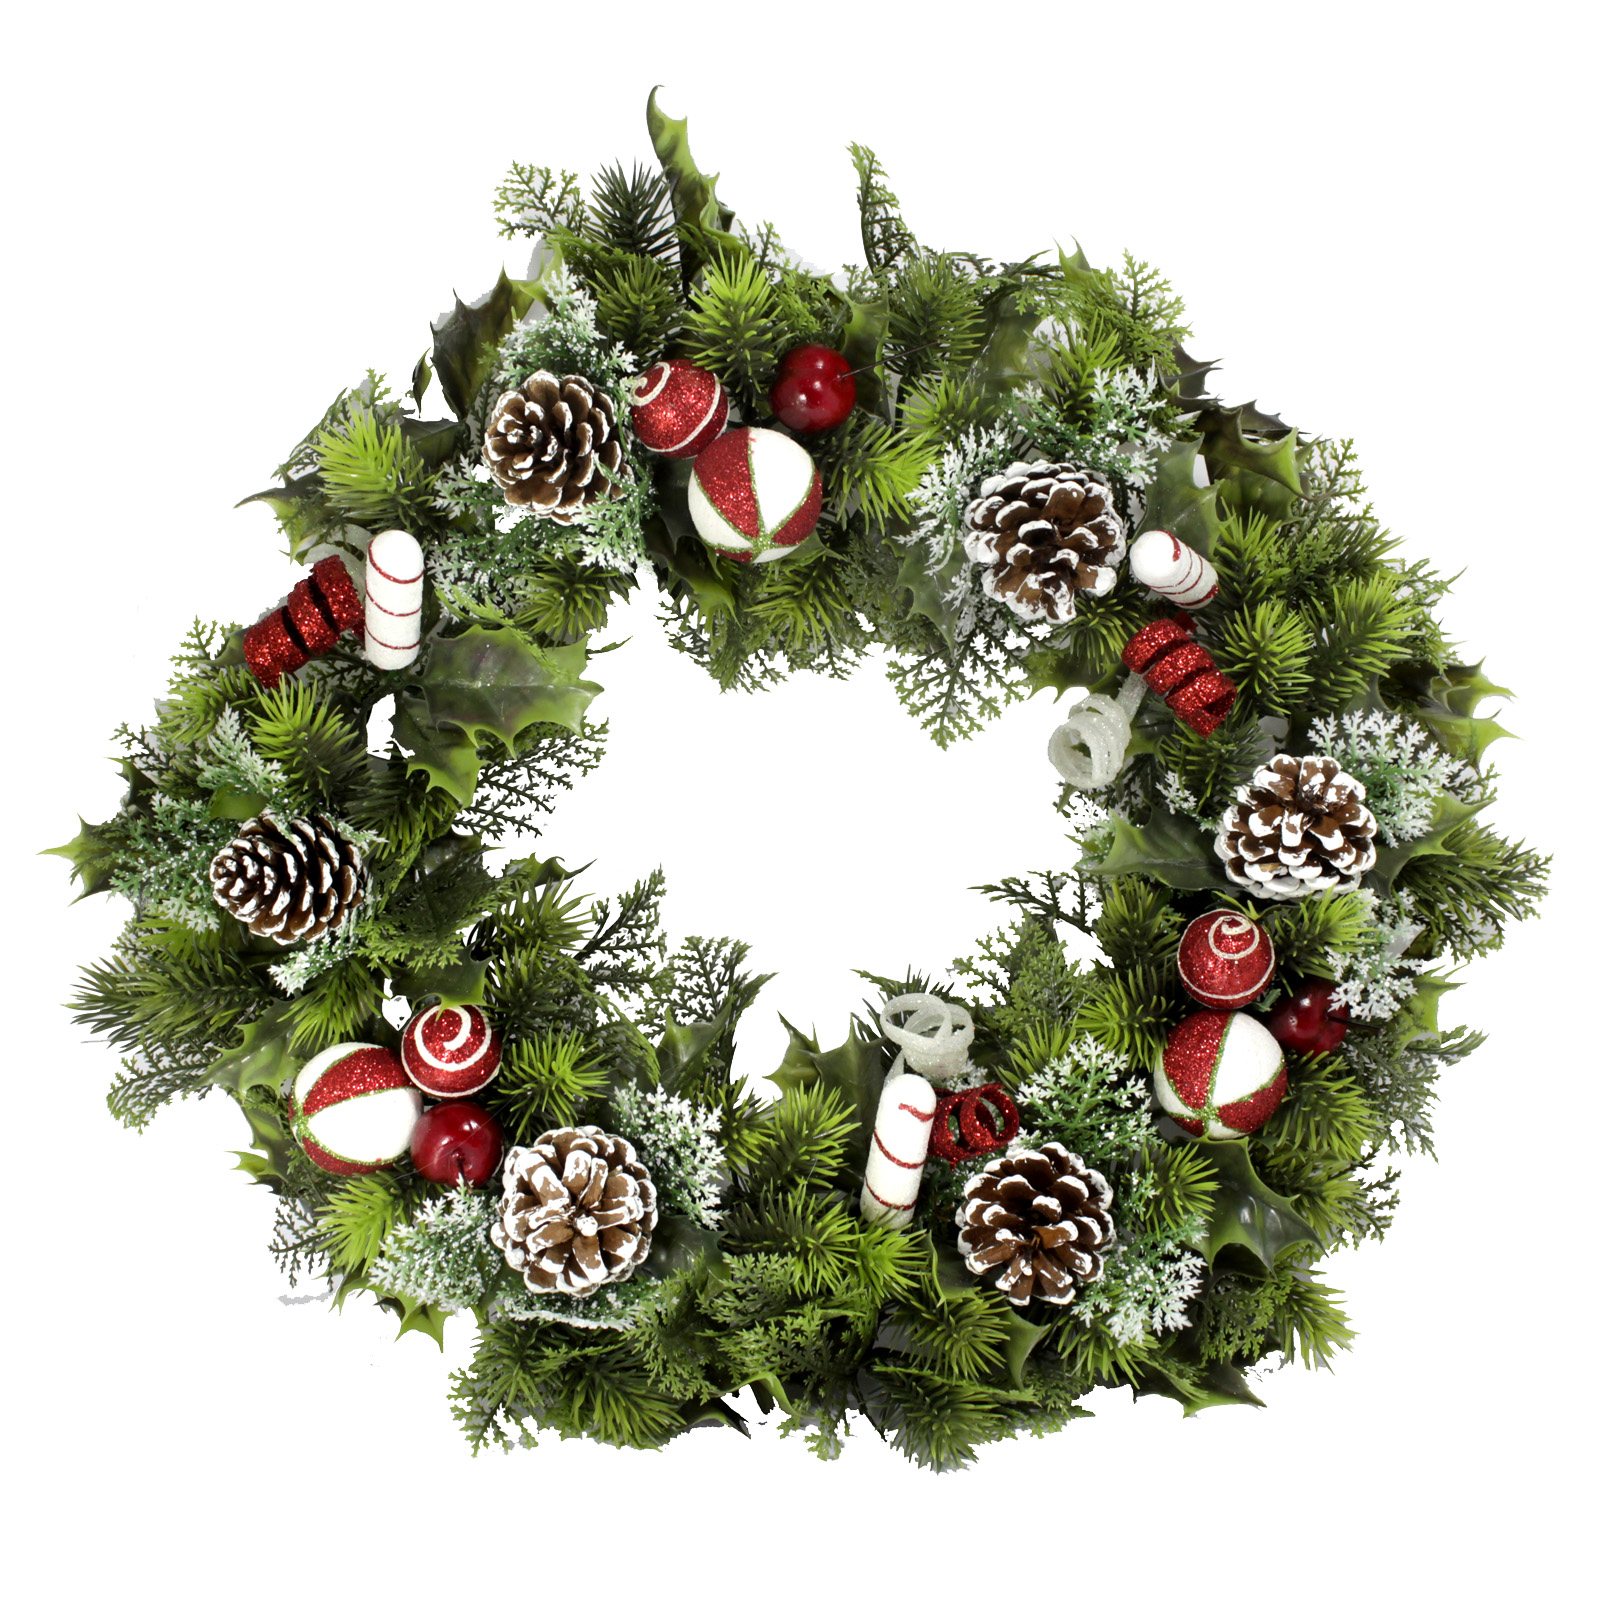 PLASTIC HOLLY WREATH LARGE CANDY CANE 18 INCH